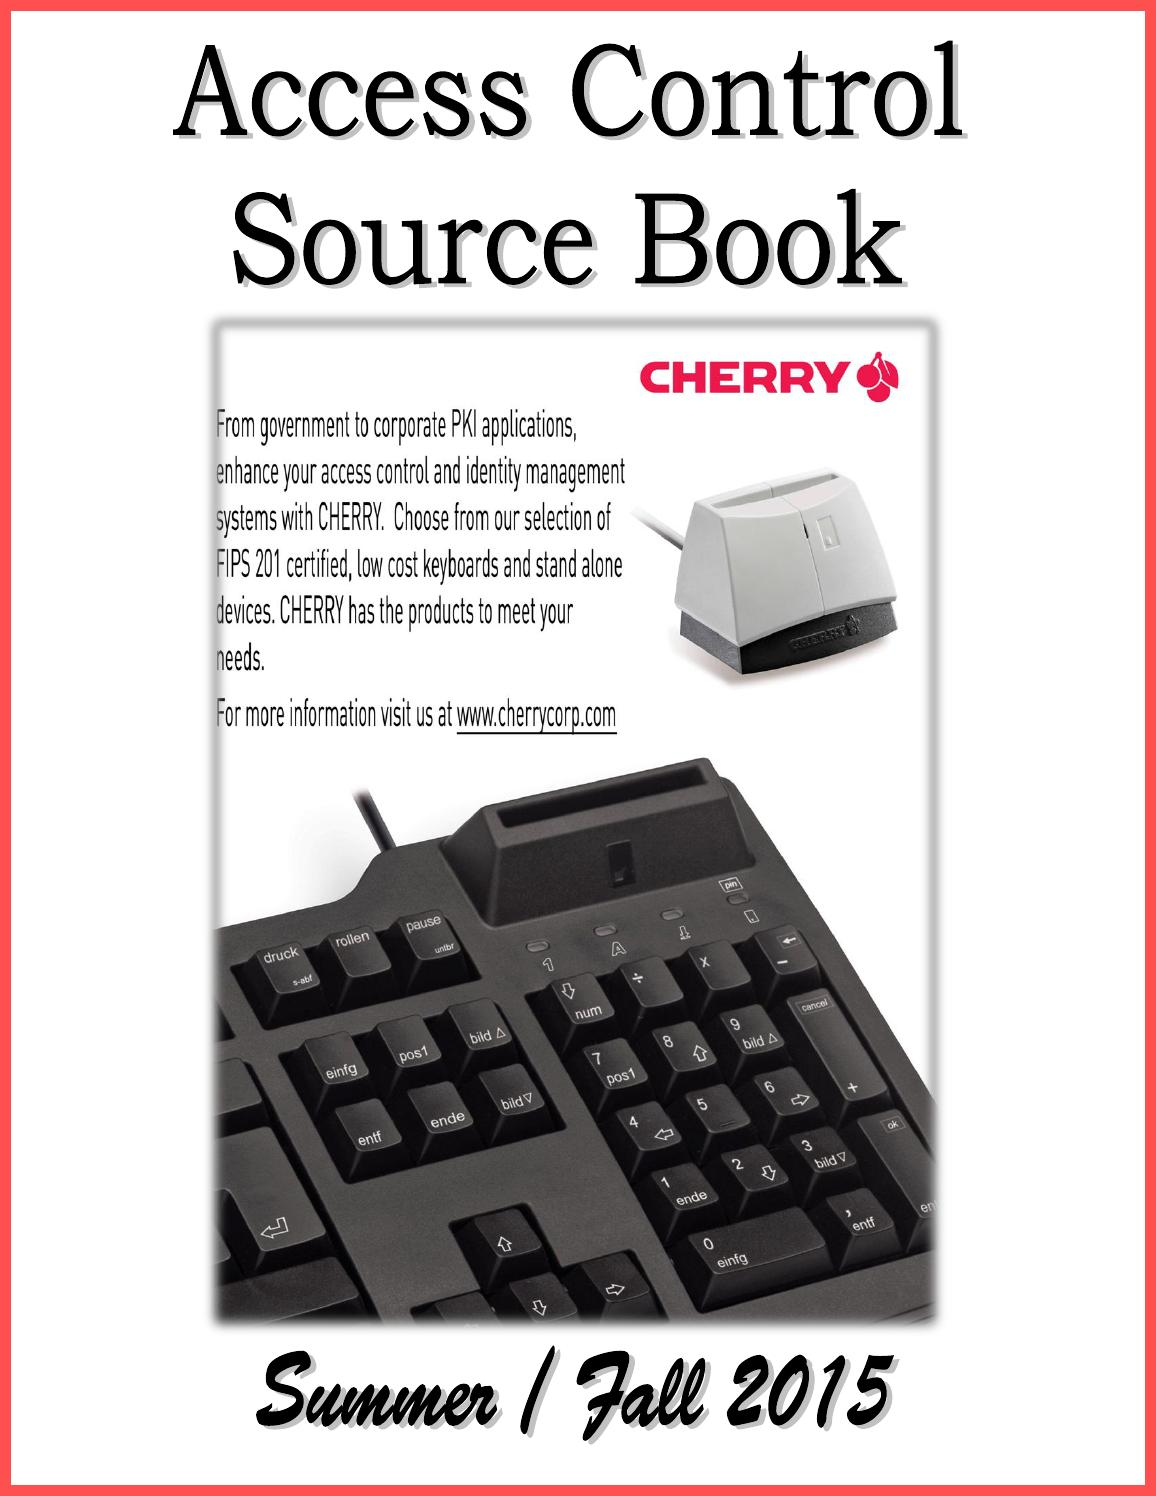 Access Control Source Book by Federal Buyers Guide, inc. - issuu